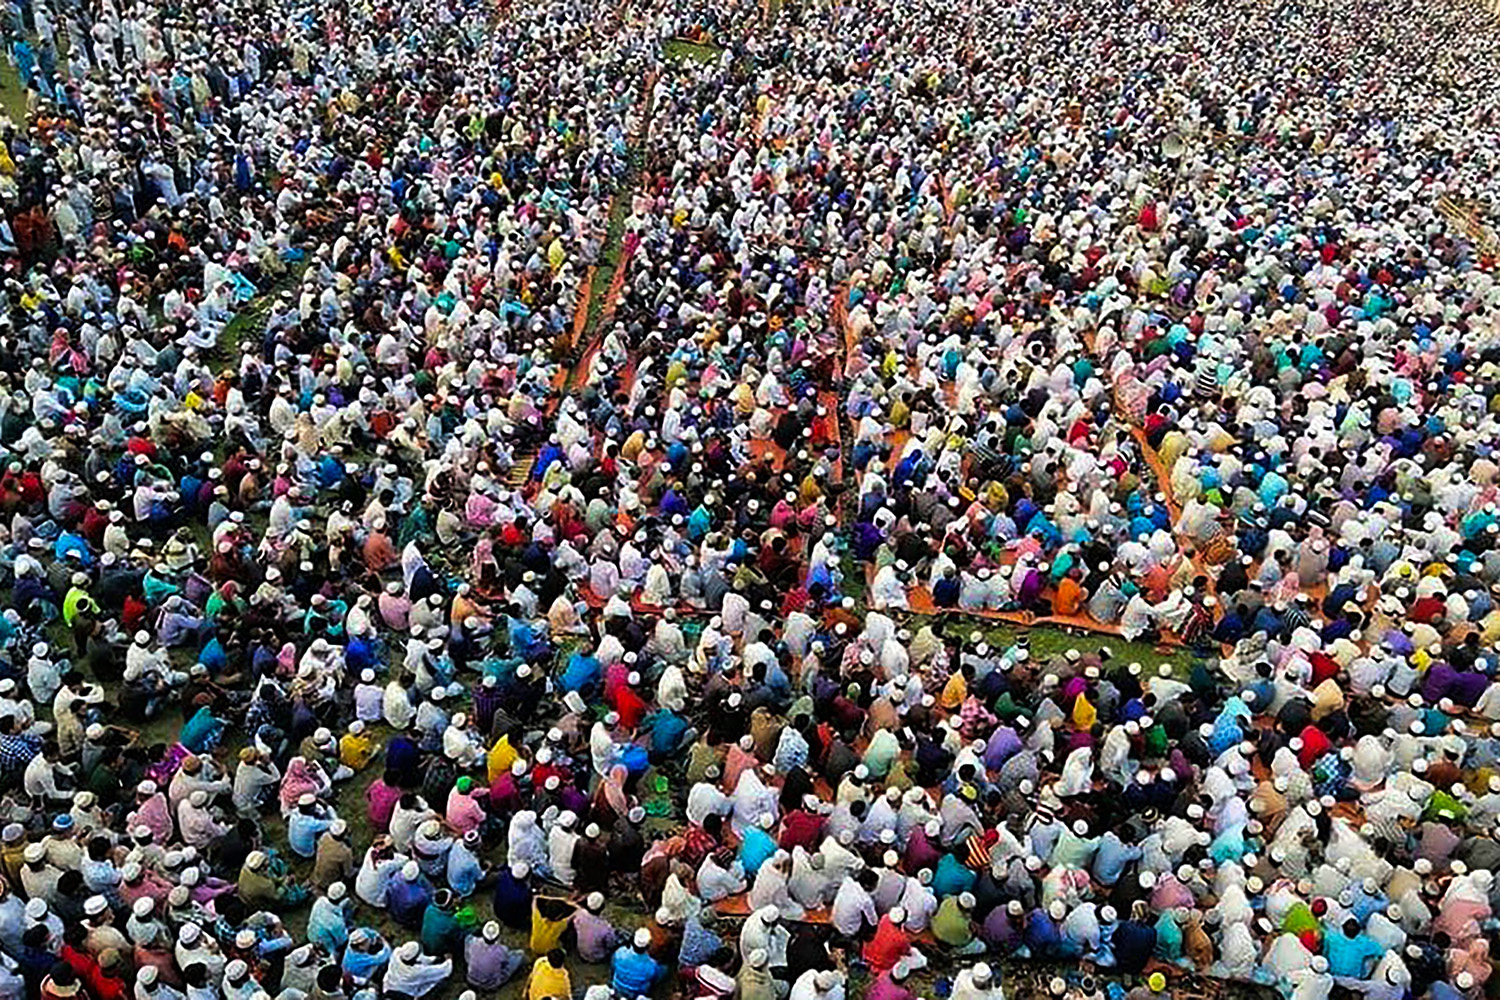 Thousands of Muslims attend a prayer session near Raipur in southern Bangladesh on March 18, asking for safety amid the spread of the coronavirus. STR/AFP via Getty Images